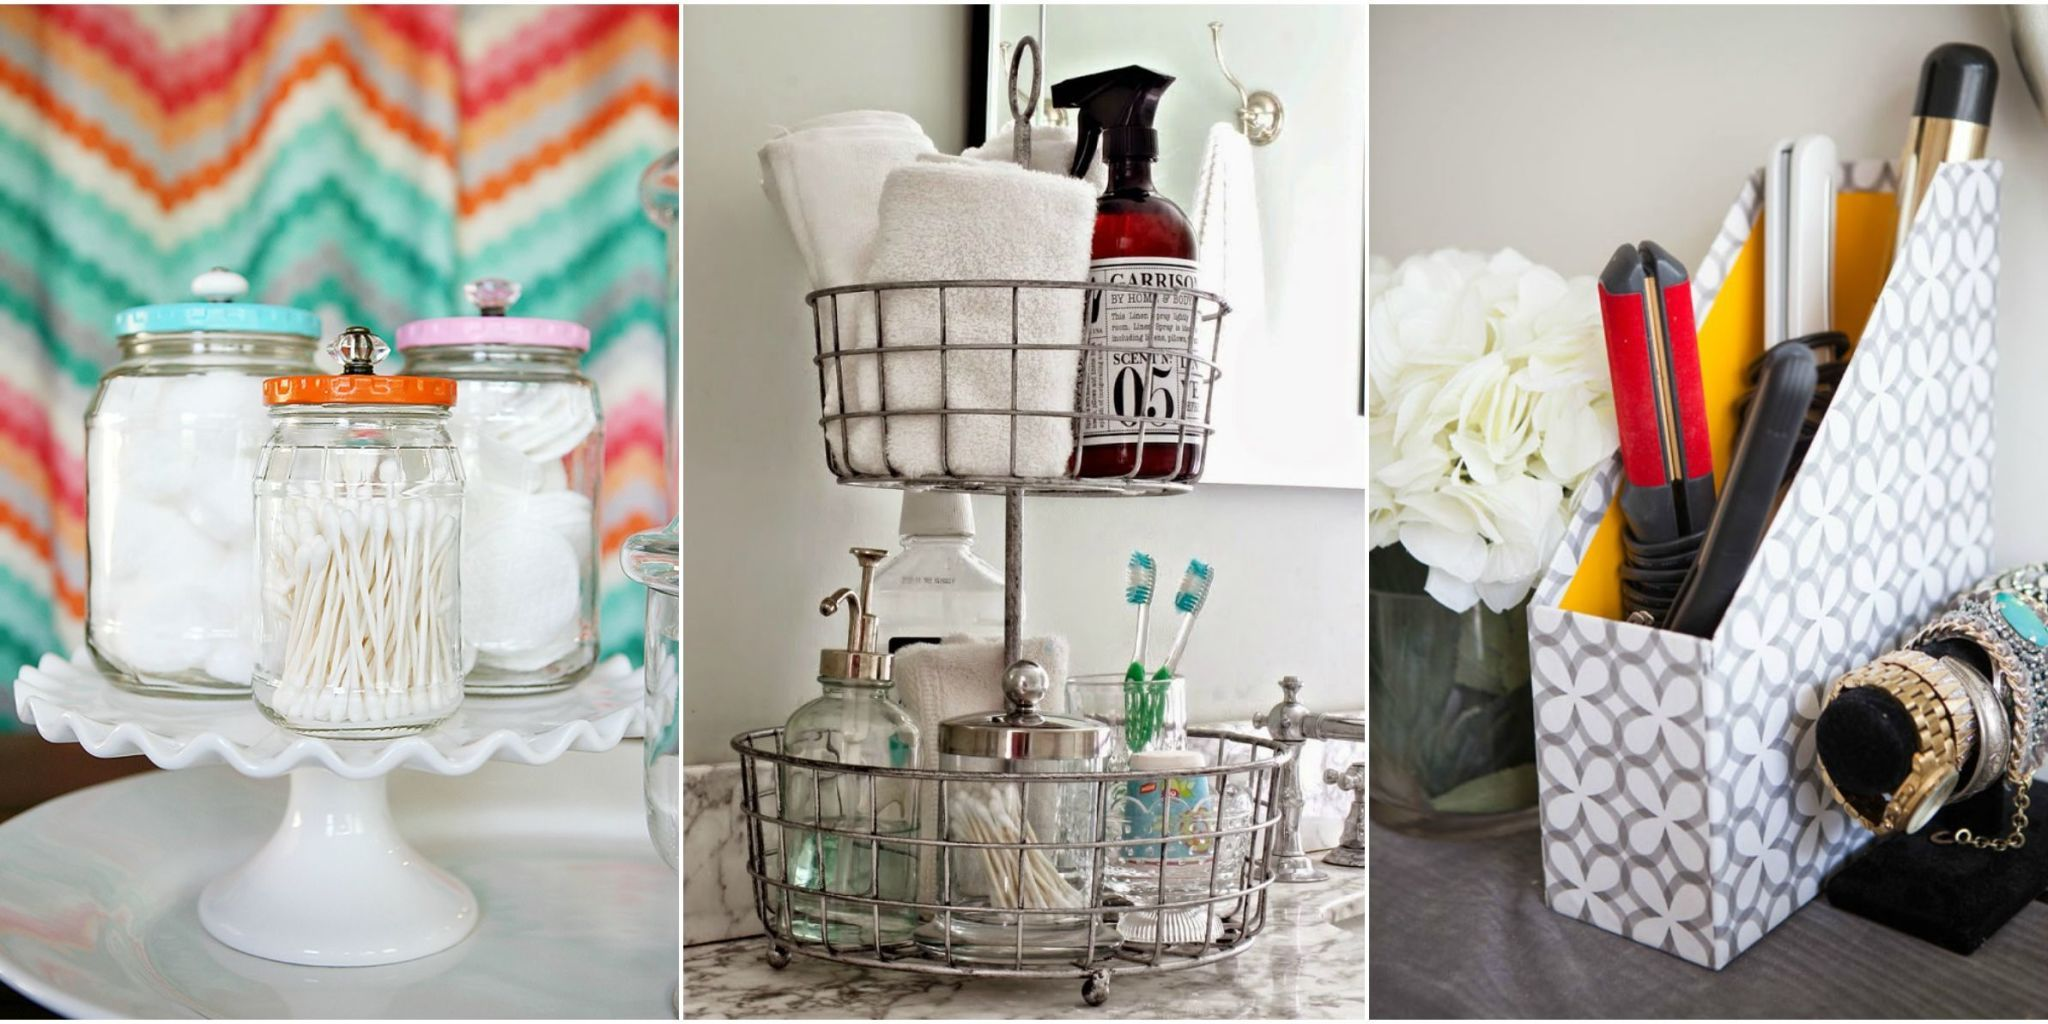 17 Organization Tricks to Make Your Bathroom Feel Twice as Big